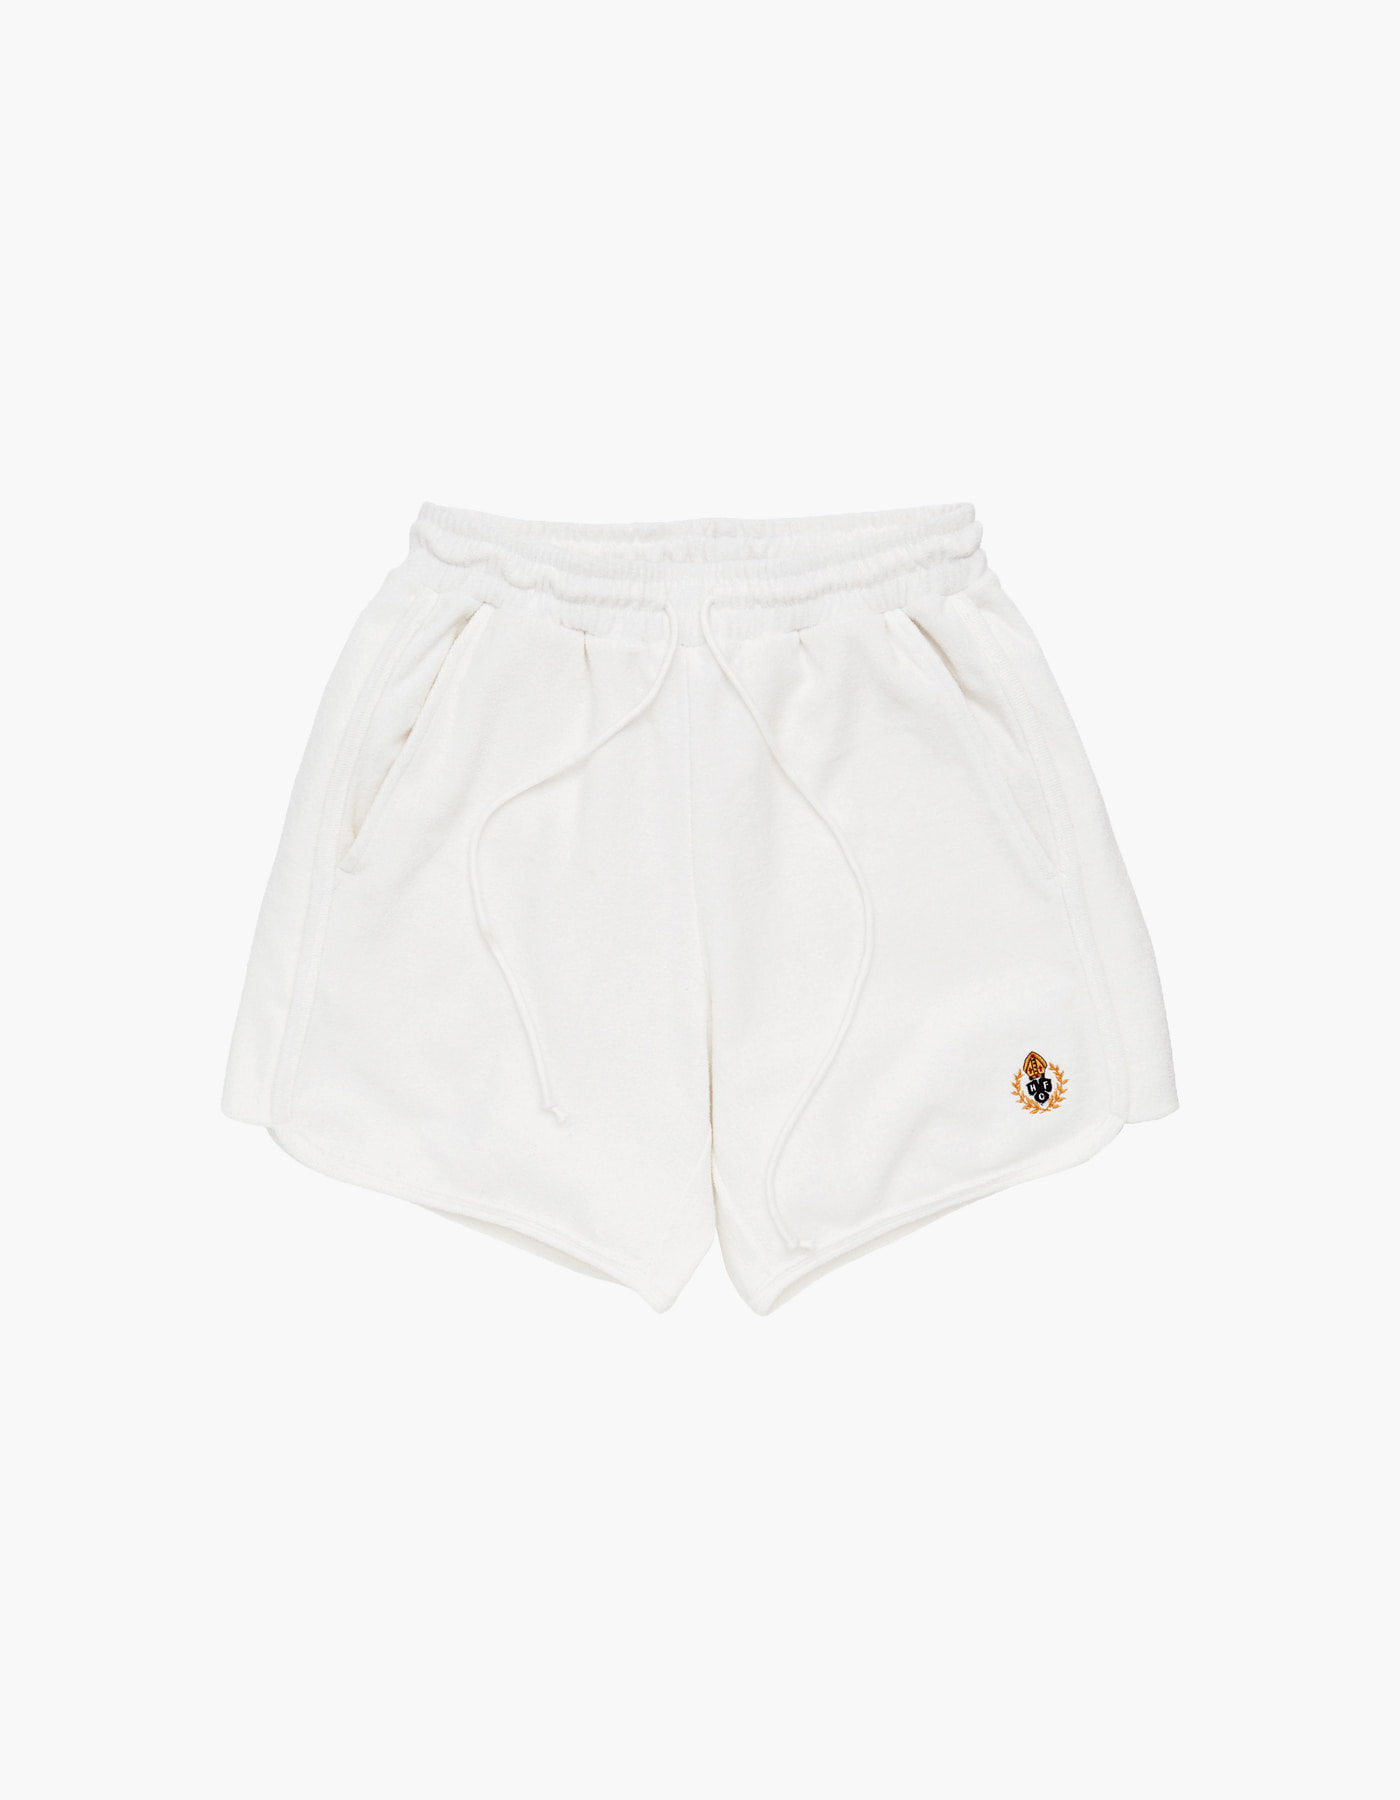 HFC CREST TOWEL SHORTS / OFF WHITE